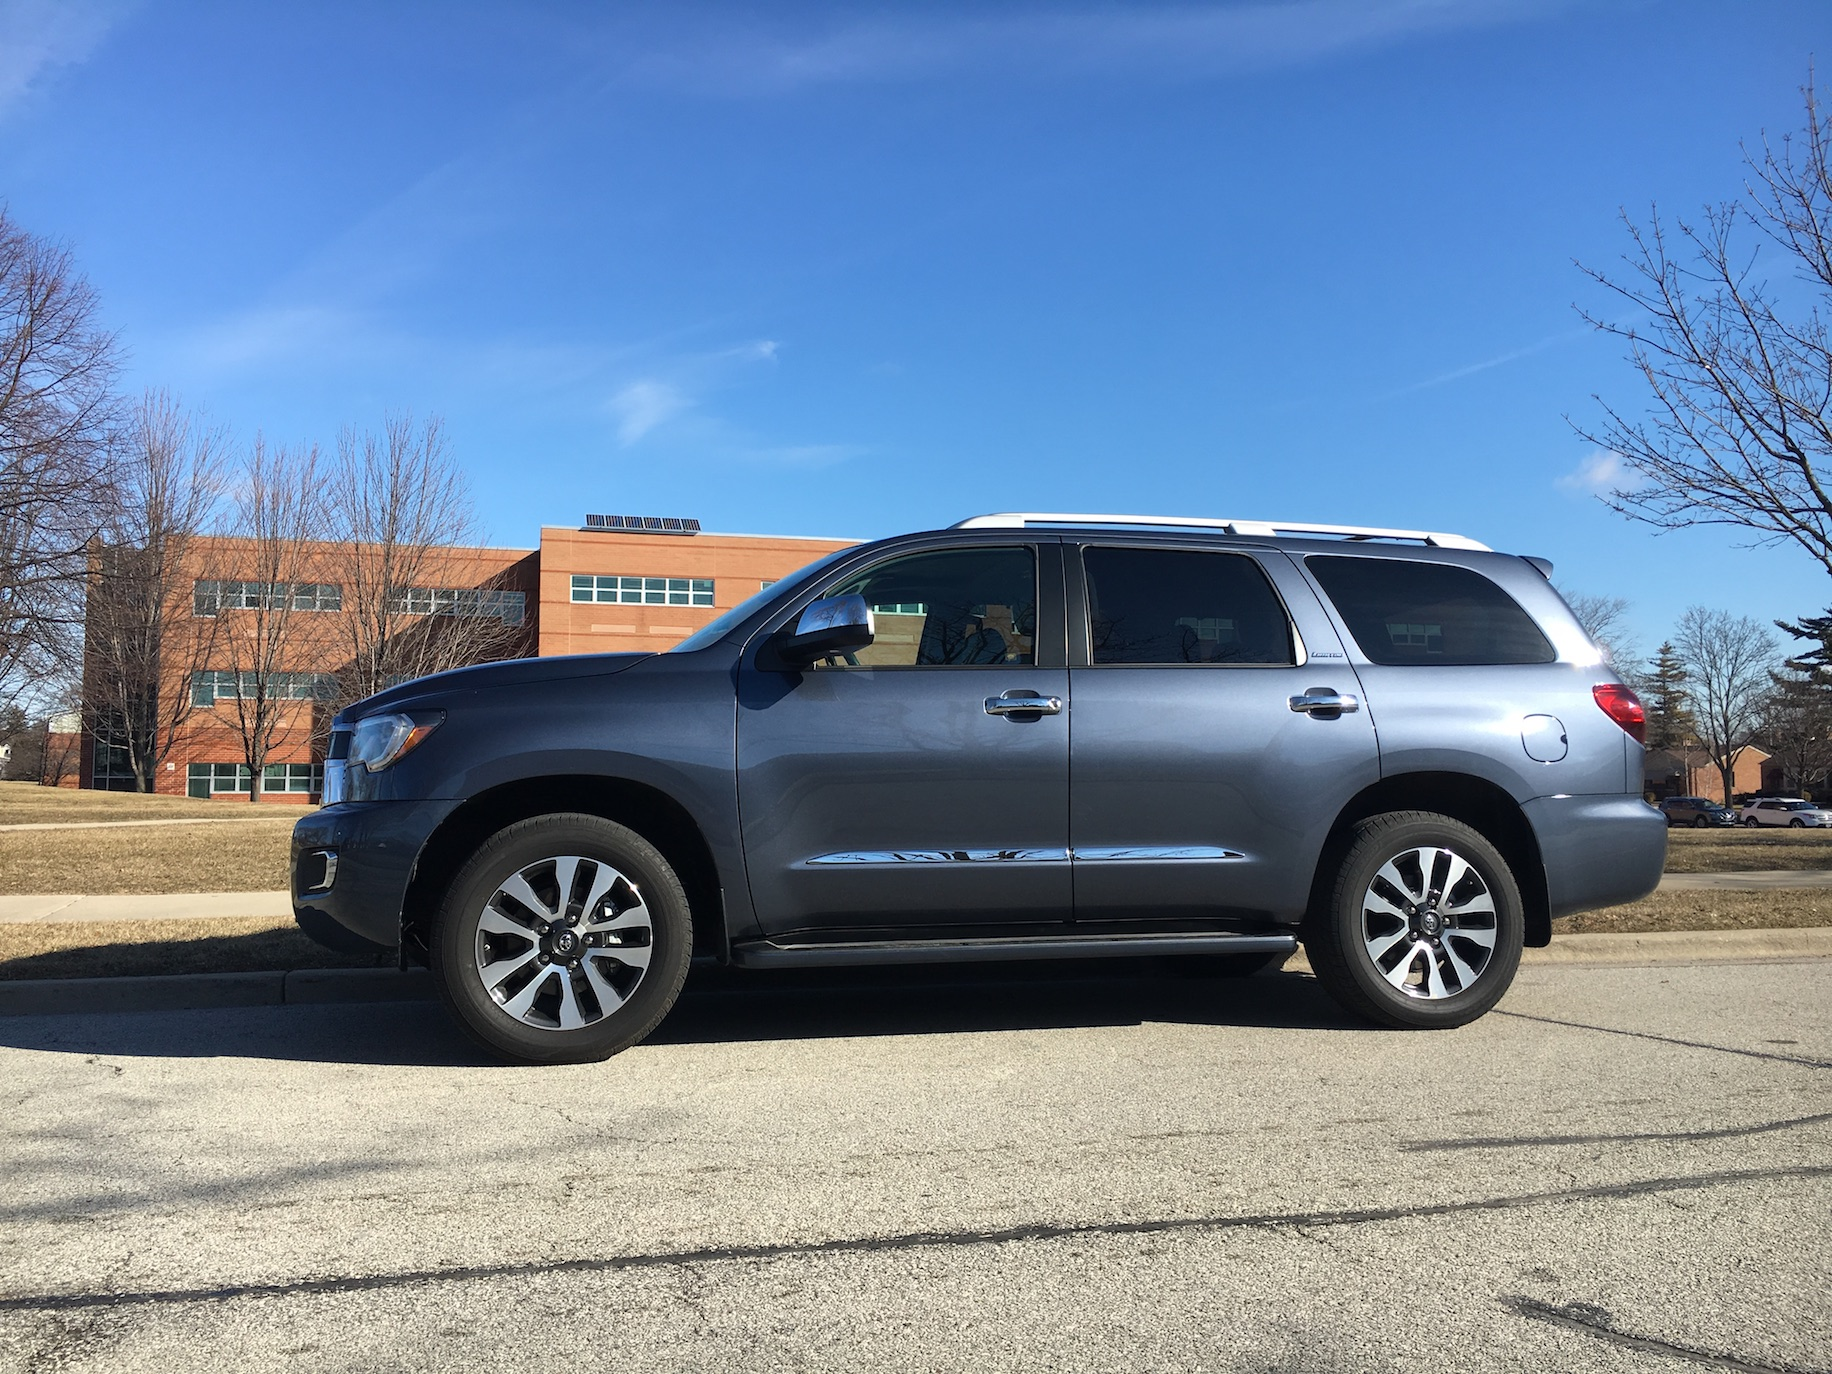 2018 toyota sequoia whats old is not new portland press herald publicscrutiny Image collections